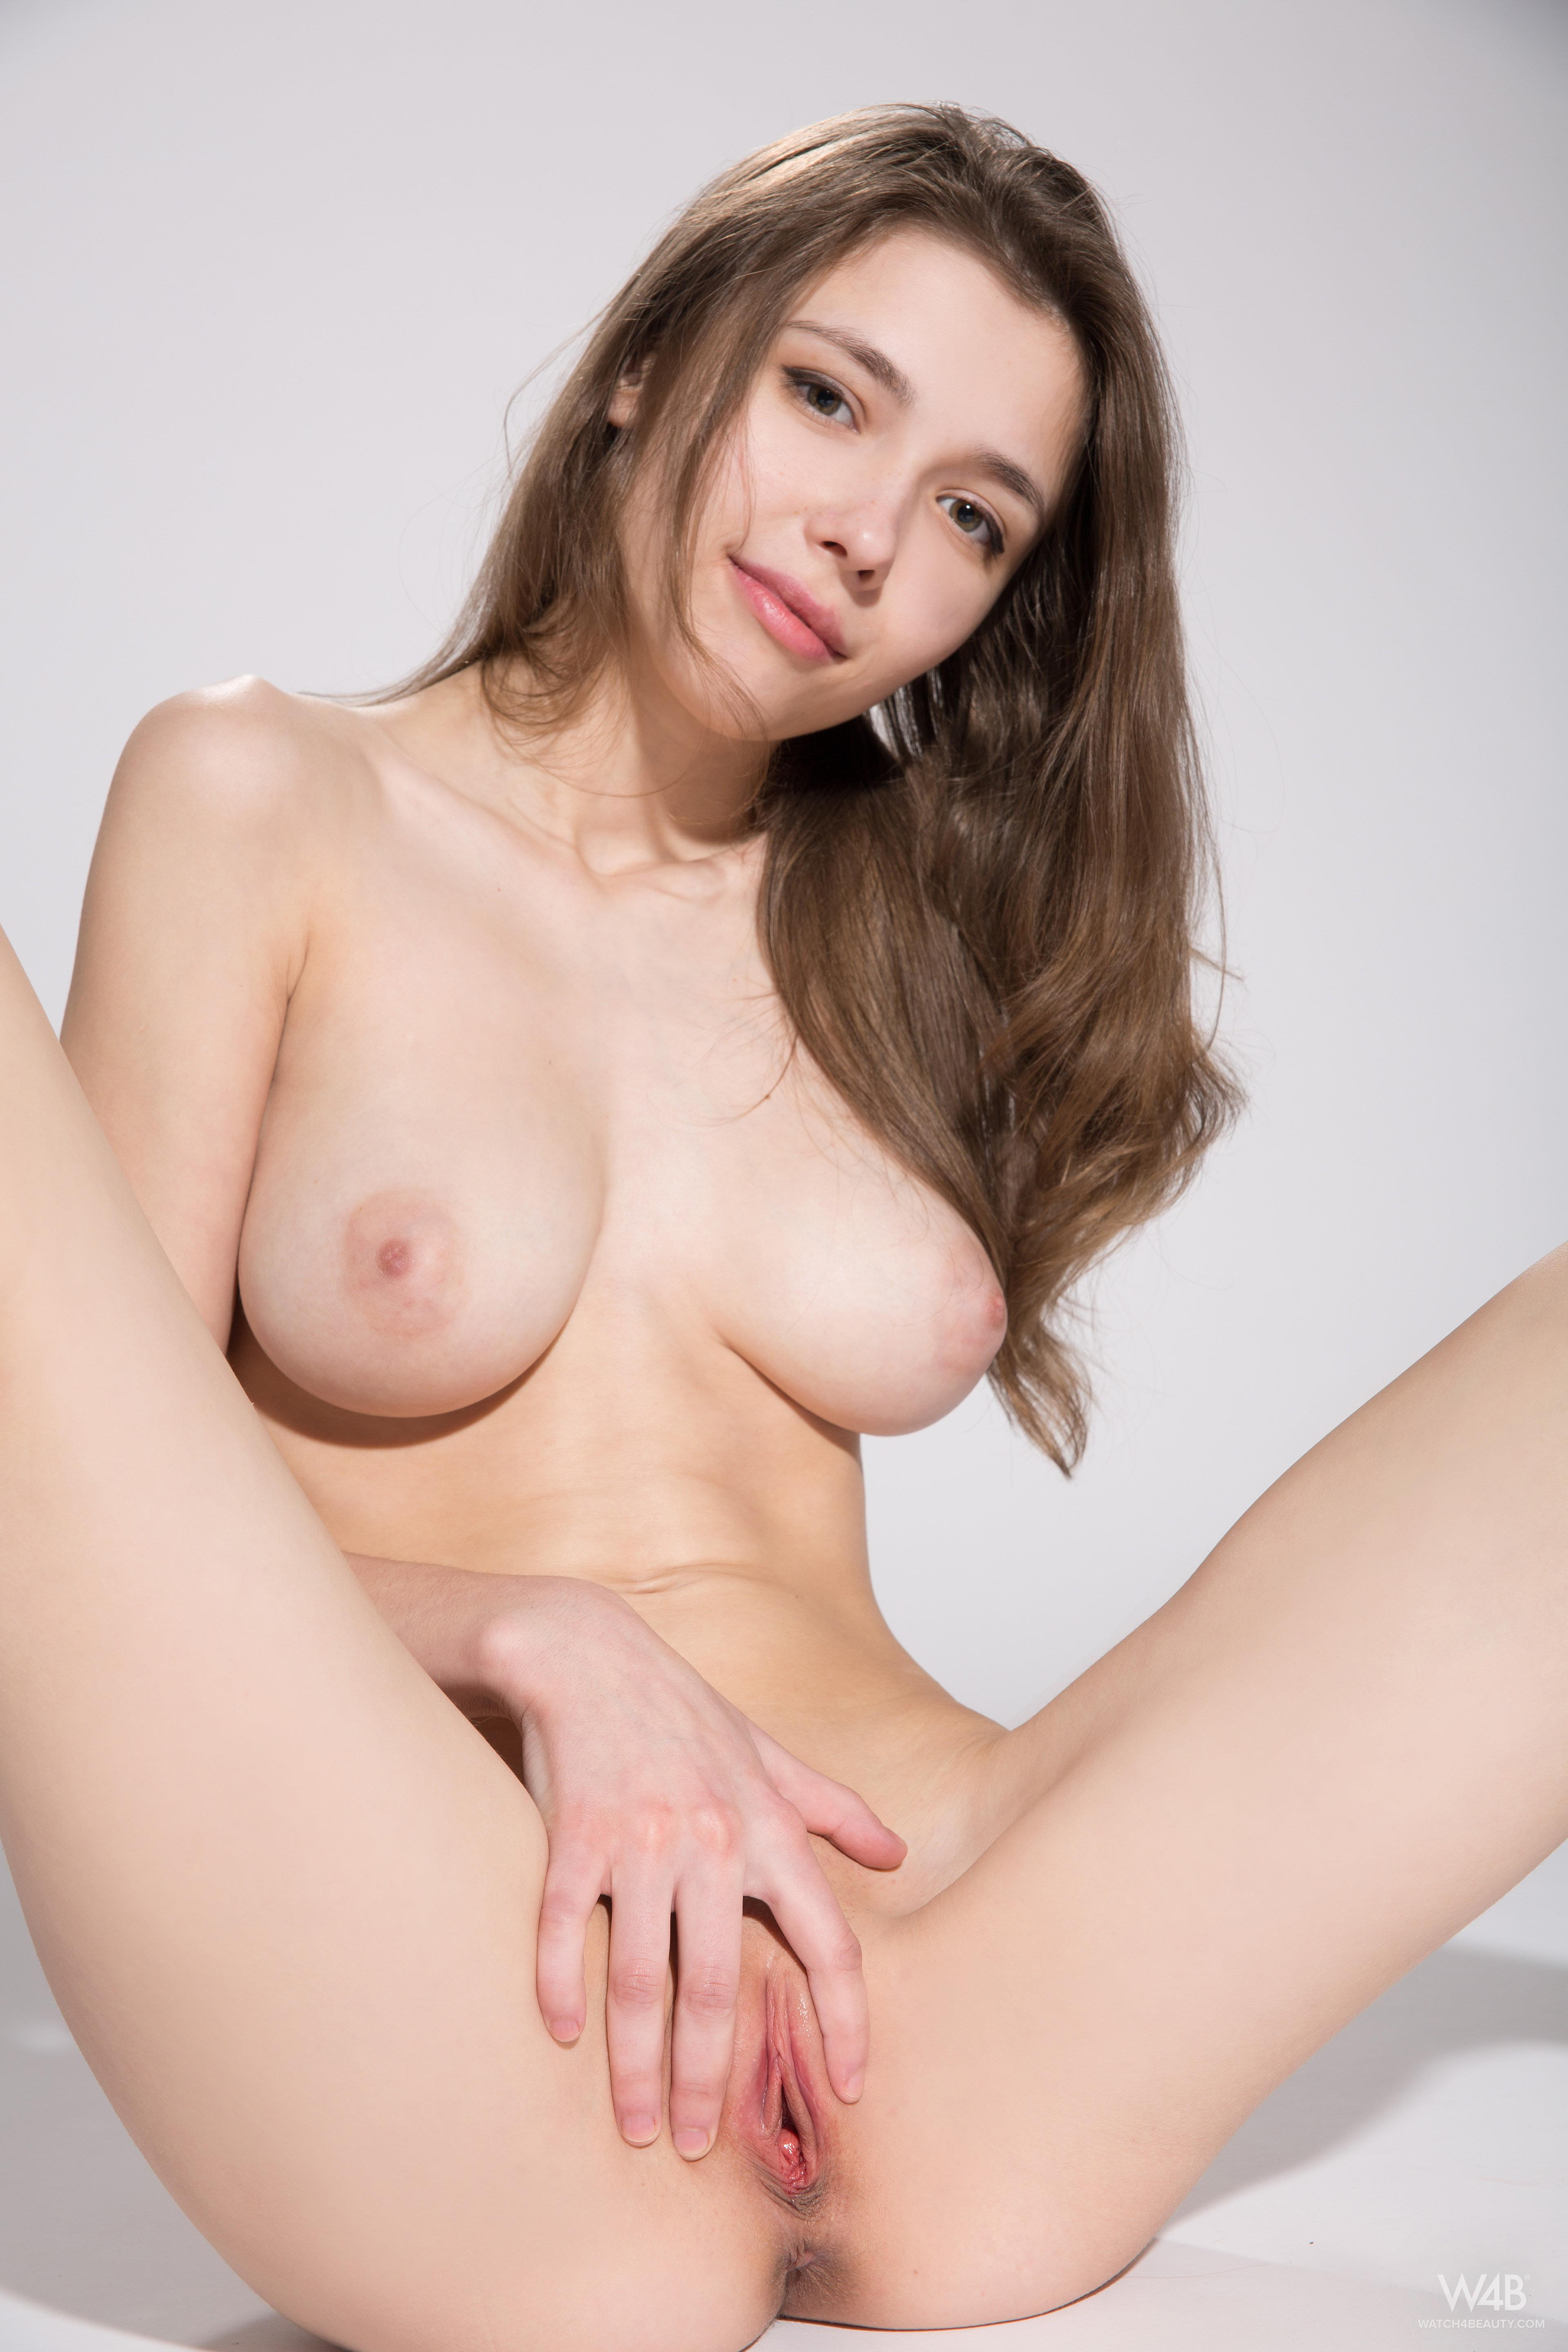 Milla - pussy and nipples